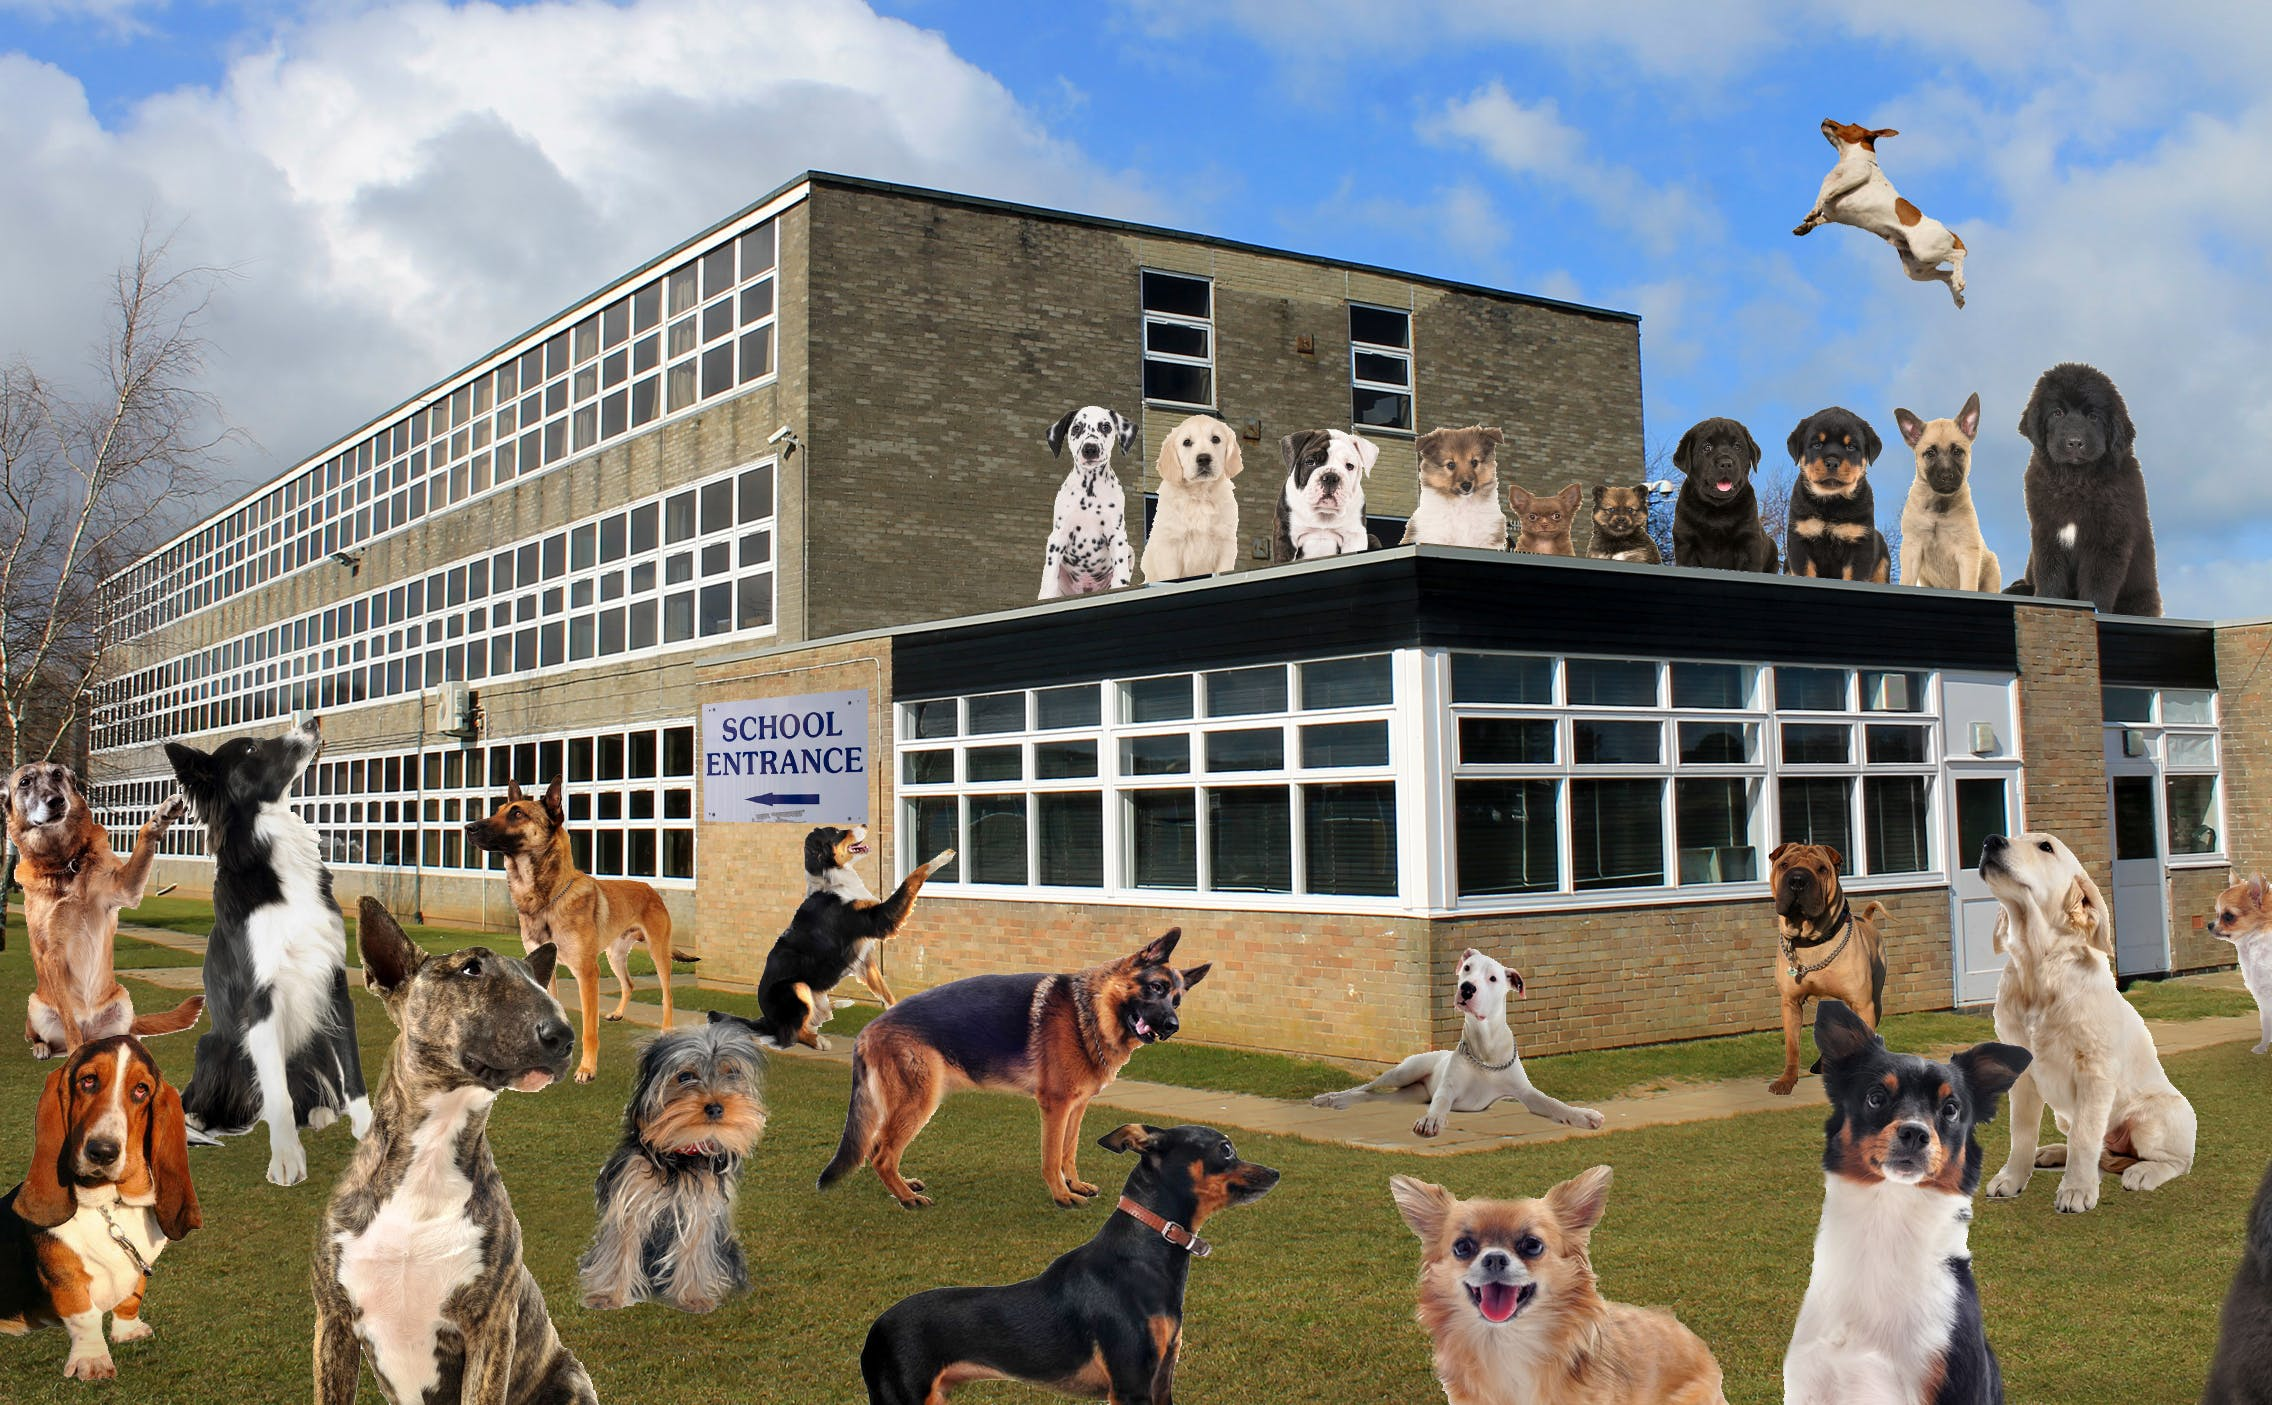 Dogs surrounding a school